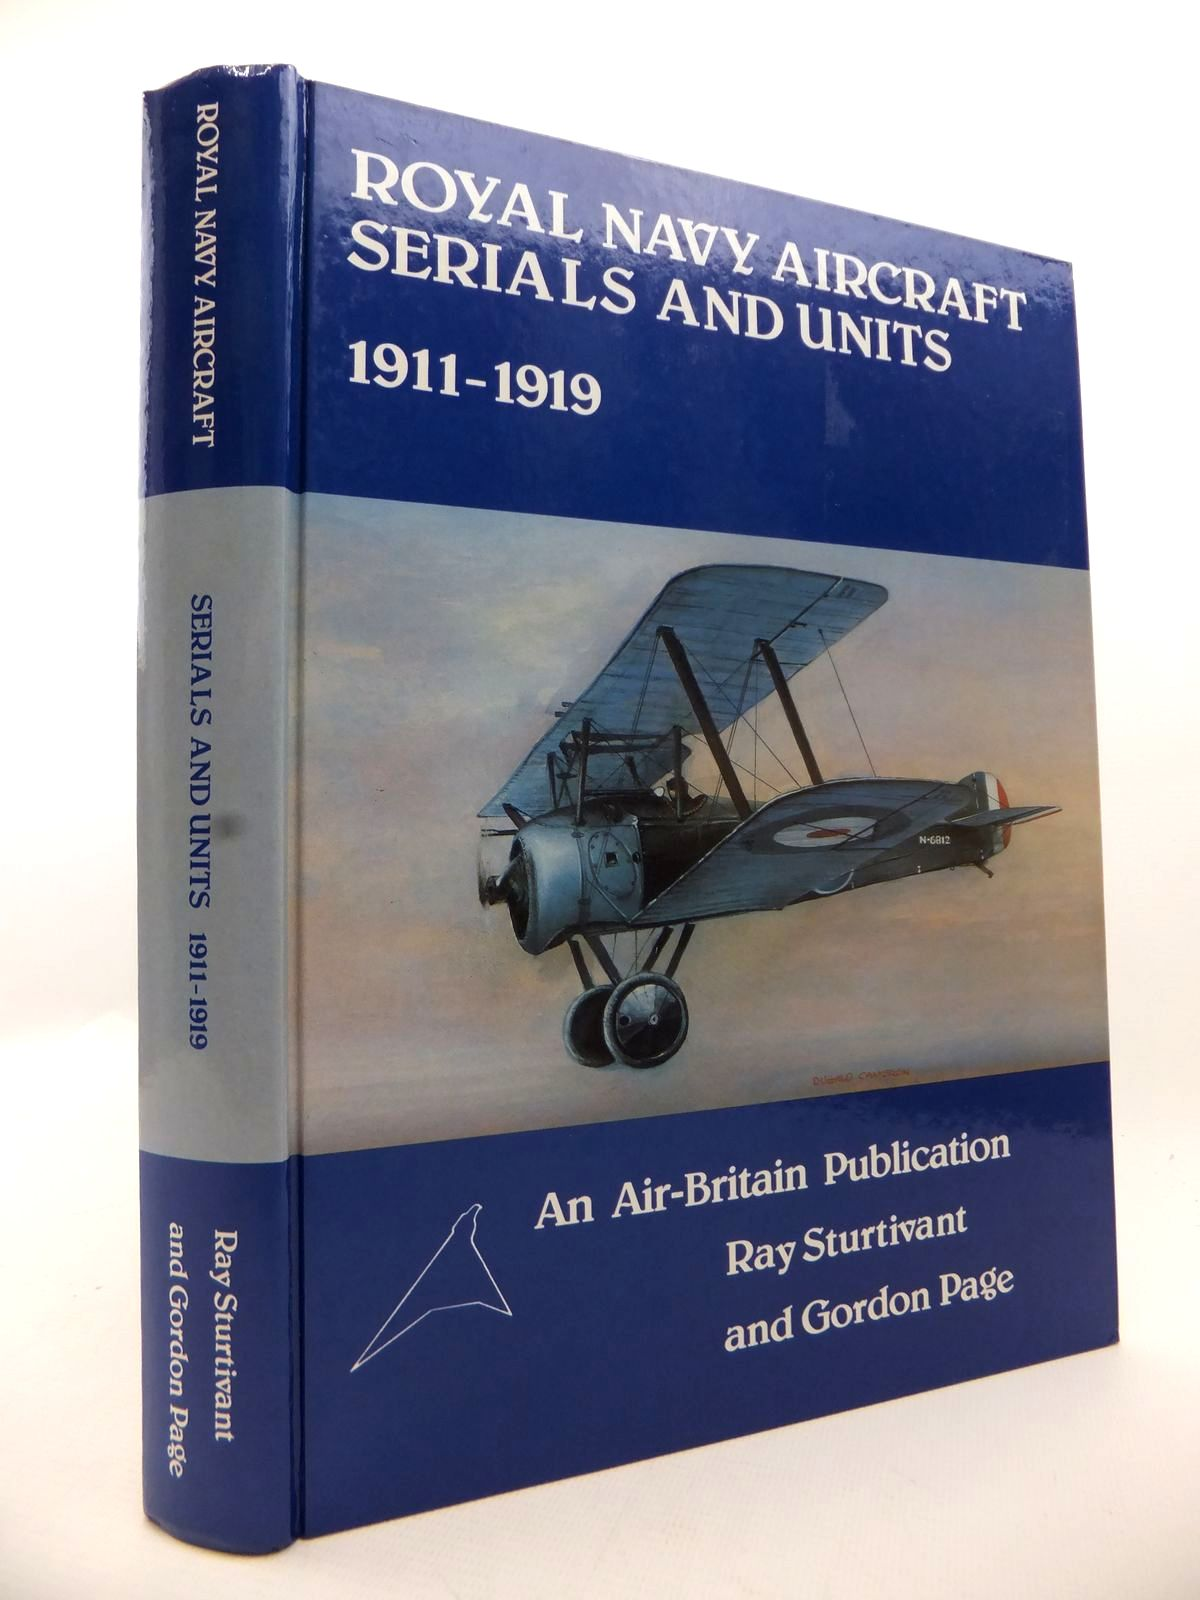 Photo of ROYAL NAVY AIRCRAFT SERIALS AND UNITS 1911-1919 written by Sturtivant, Ray<br />Page, Gordon published by Air-Britain (historians) Ltd. (STOCK CODE: 1813098)  for sale by Stella & Rose's Books